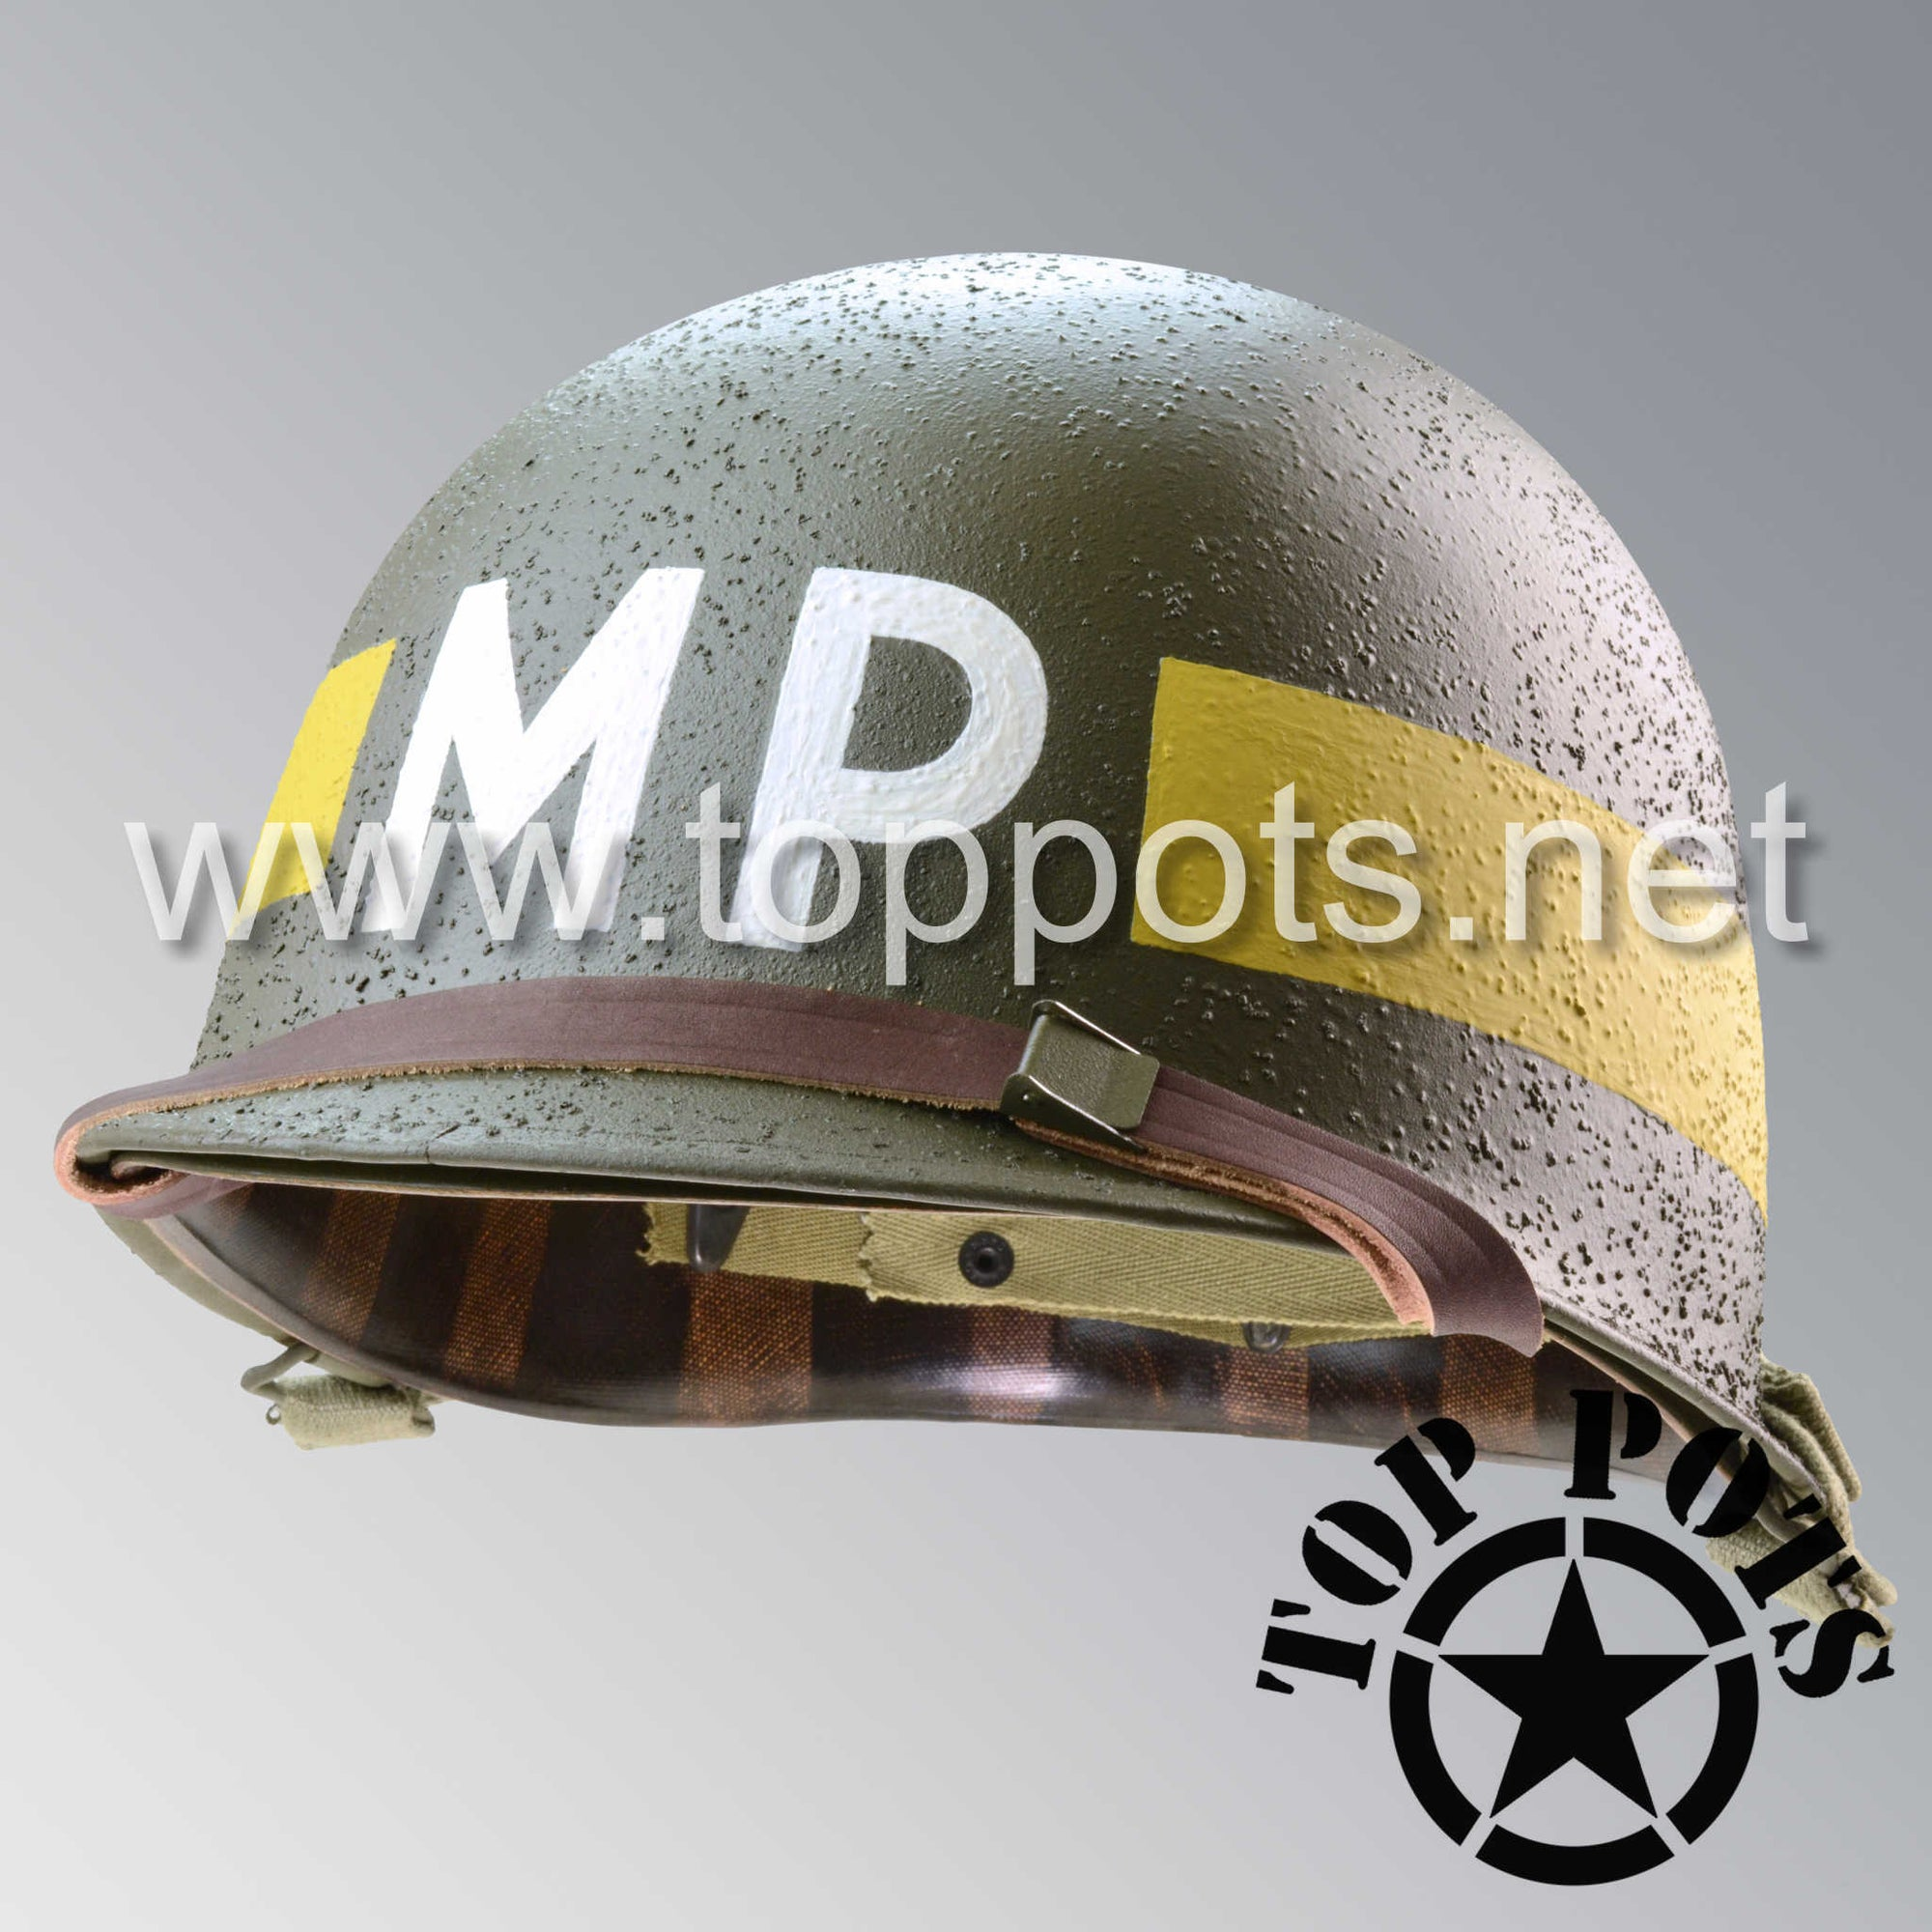 Image 1 of WWII US Army Restored Original M1 Infantry Helmet Swivel Bale Shell and Liner with Yellow Divisional MP Military Police Emblem